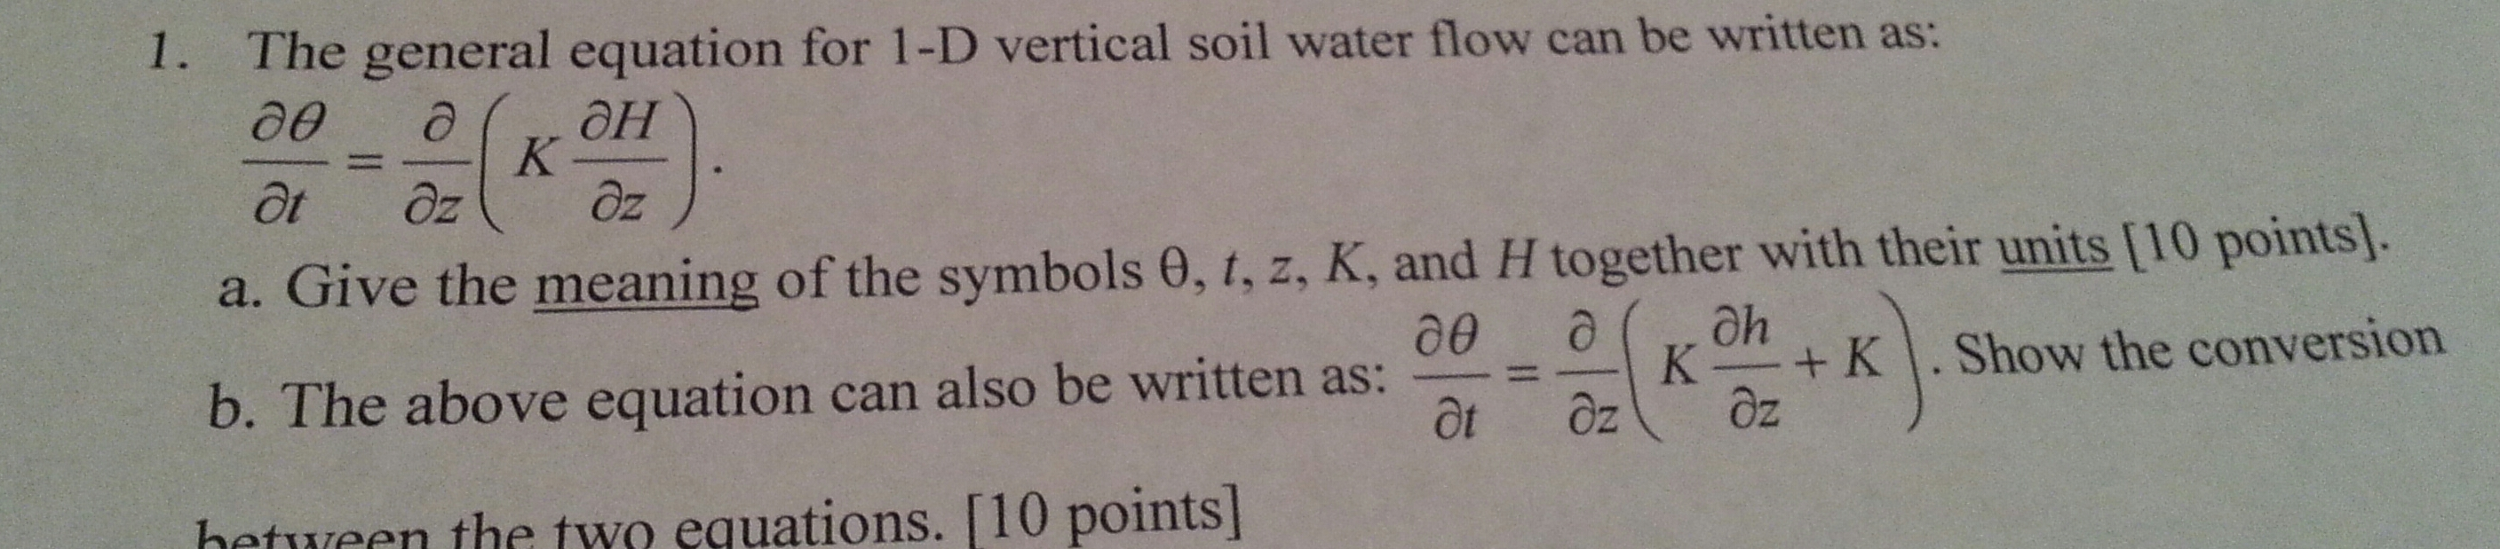 The general equation for 1 -D vertical soil water